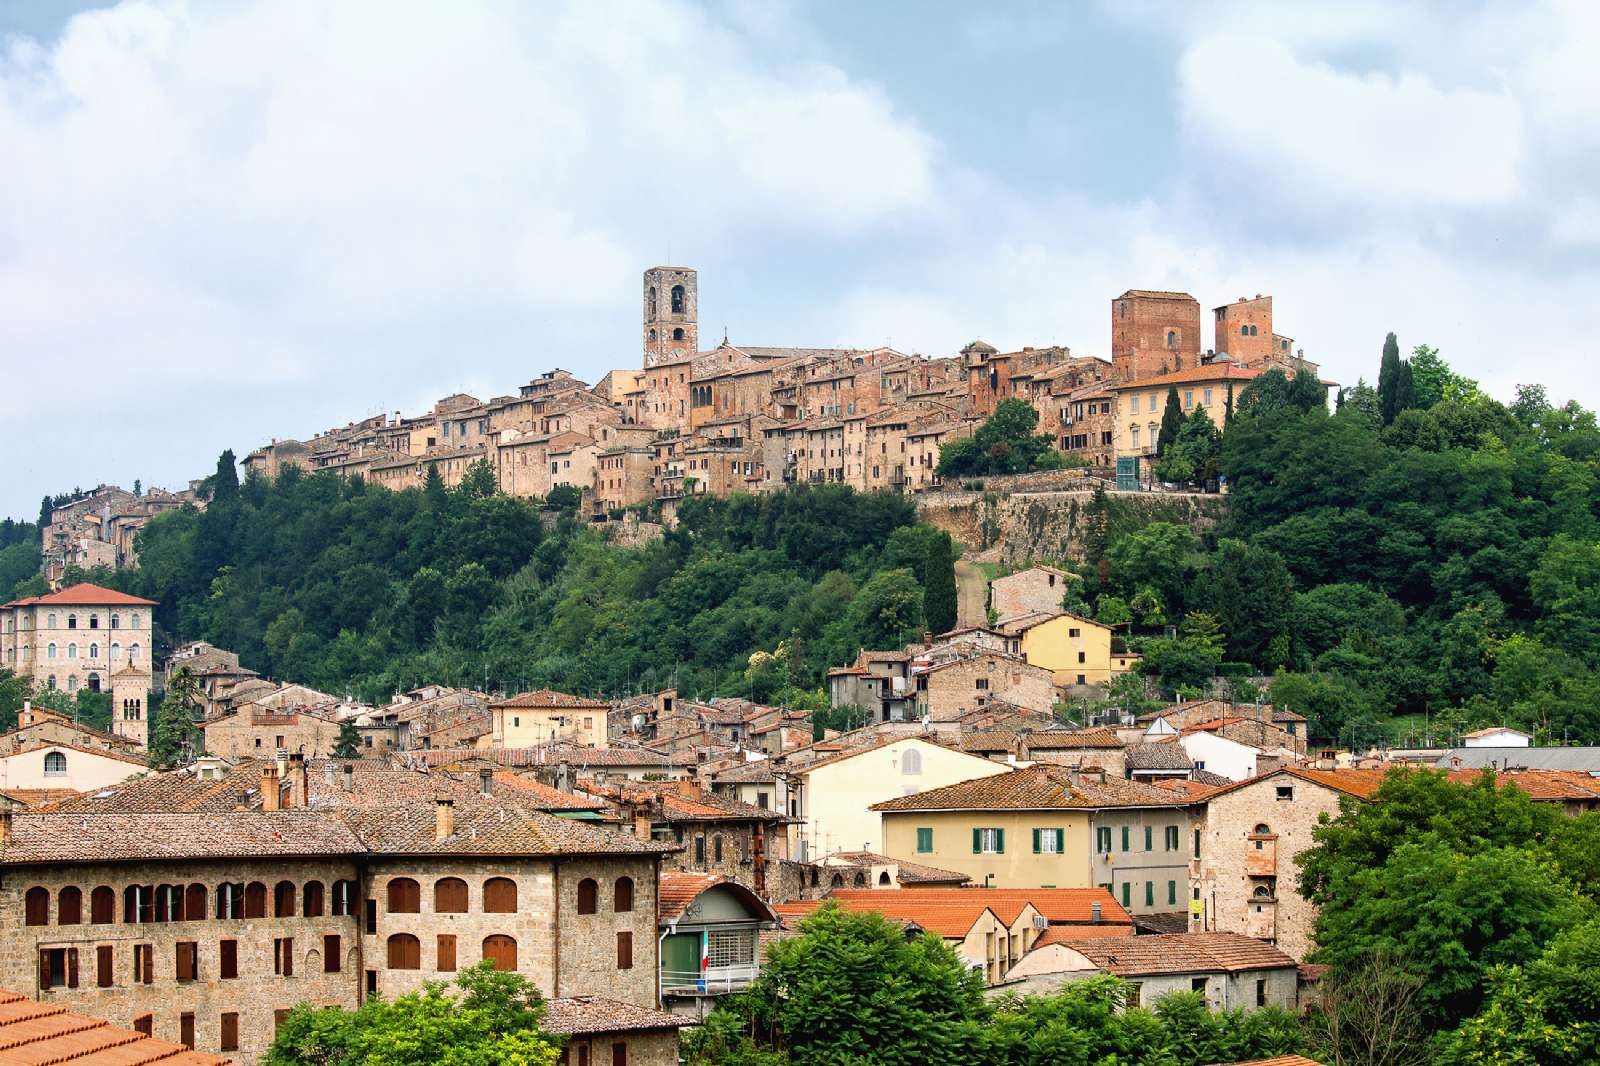 Views from the historic centre of Colle Val d'Elsa